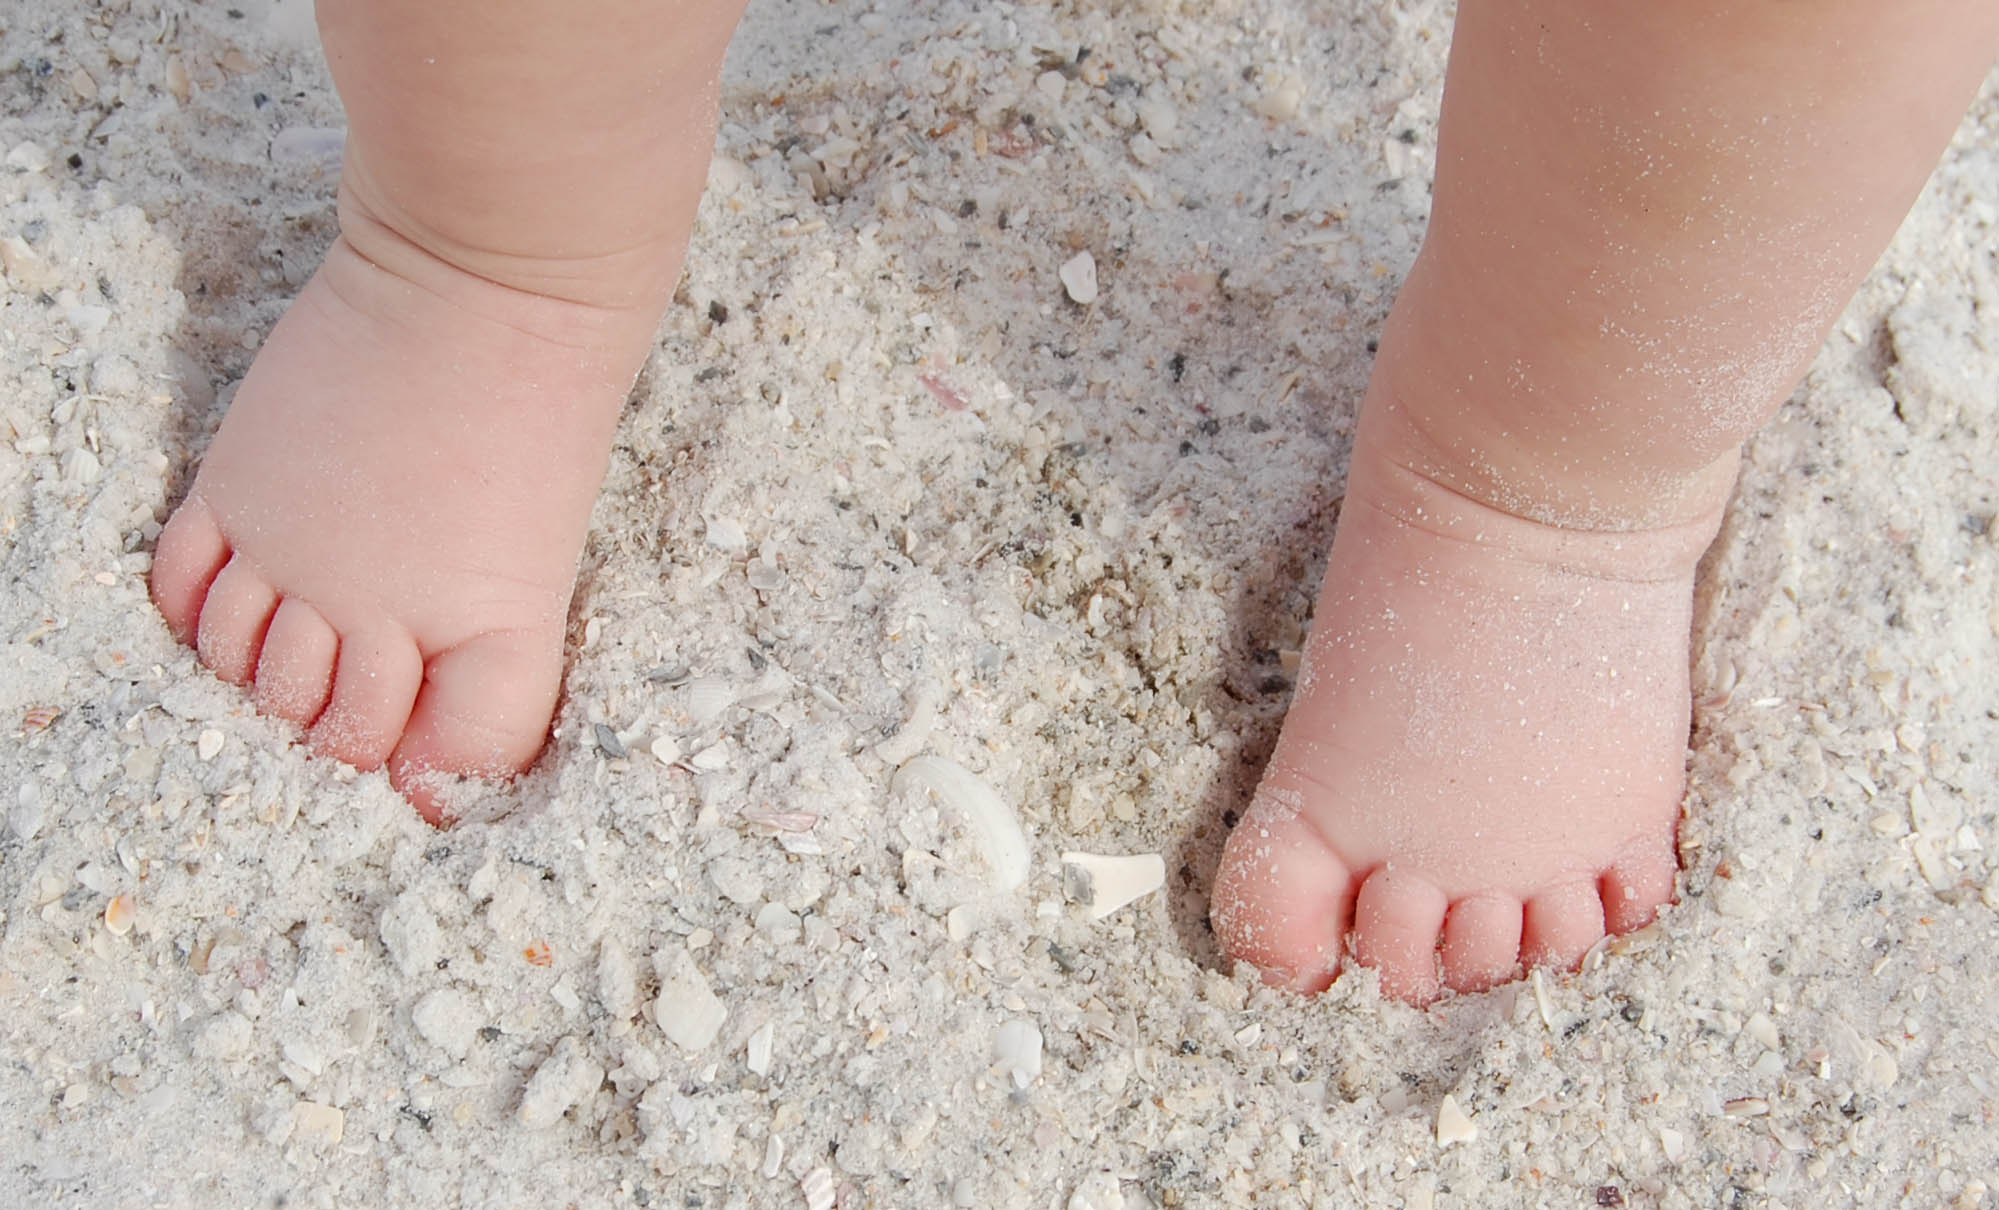 Tiny Feet In the Sand